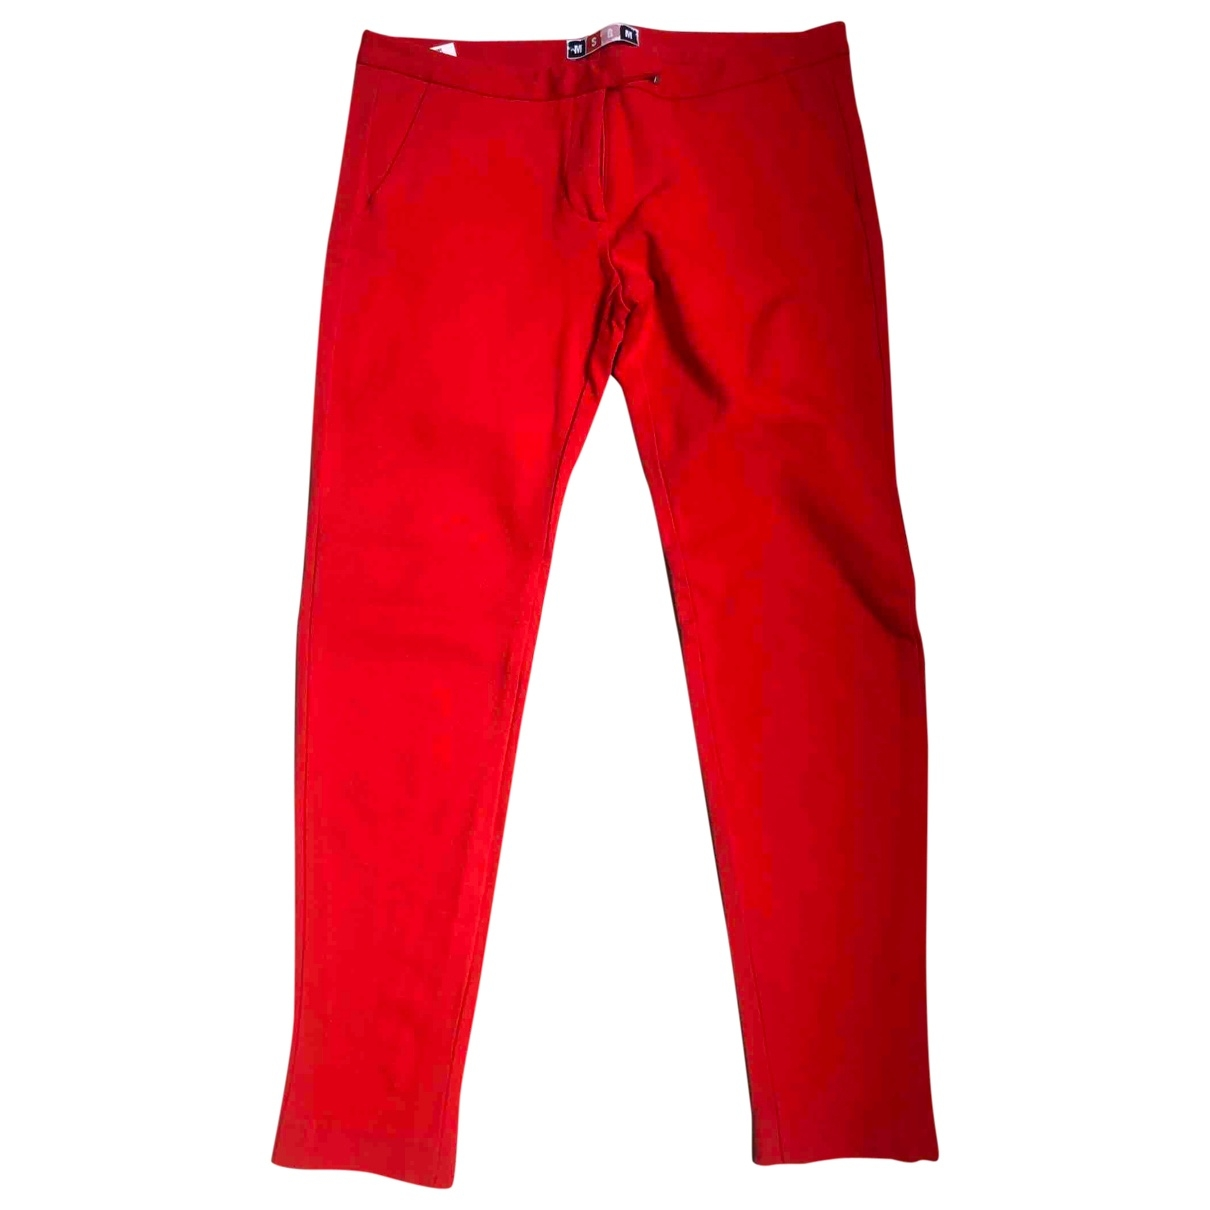 Msgm \N Red Trousers for Women 42 IT